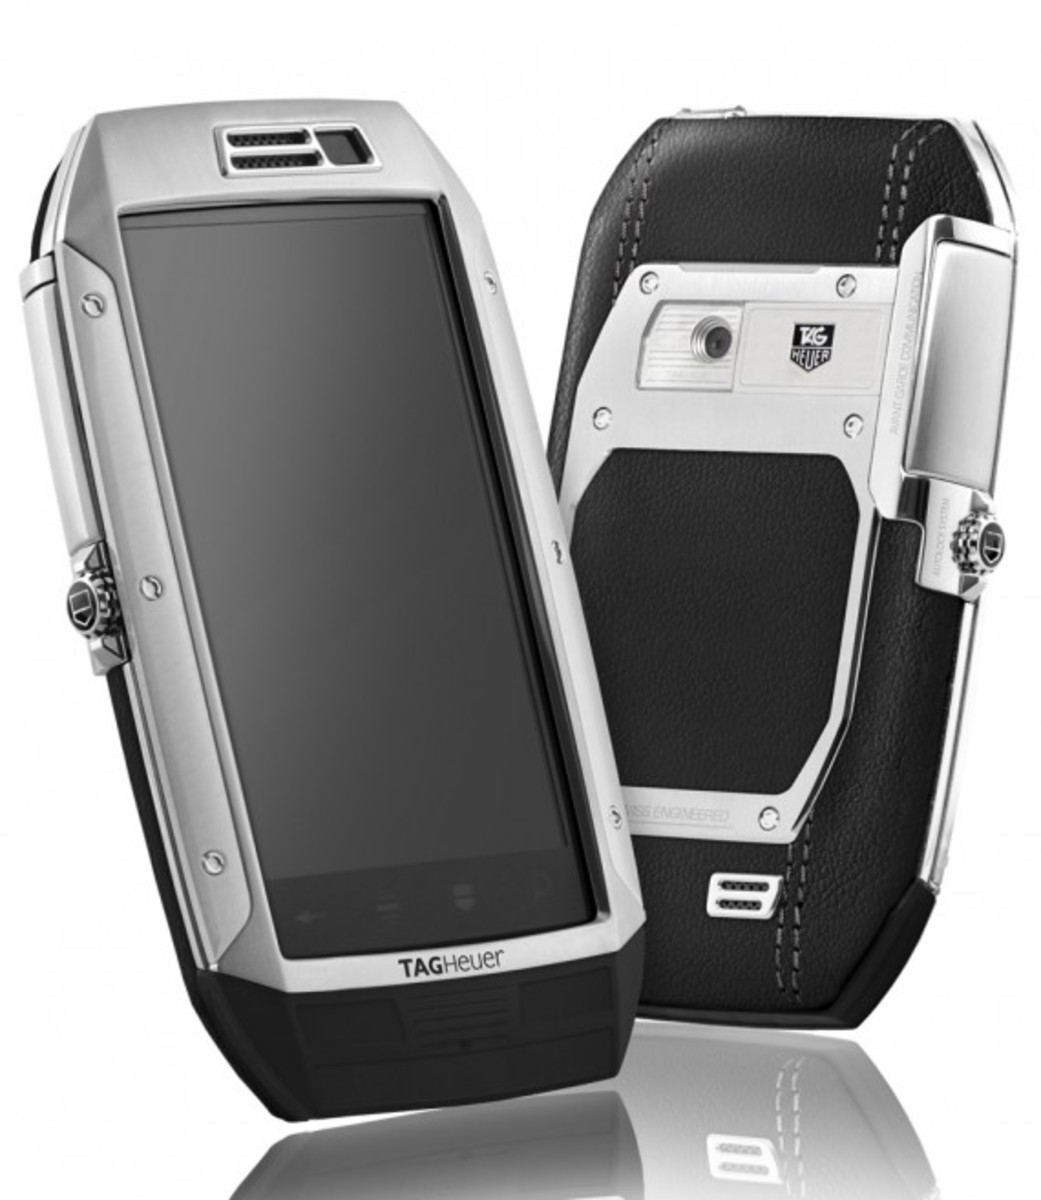 tag-heuer-link-mobile-phone-05